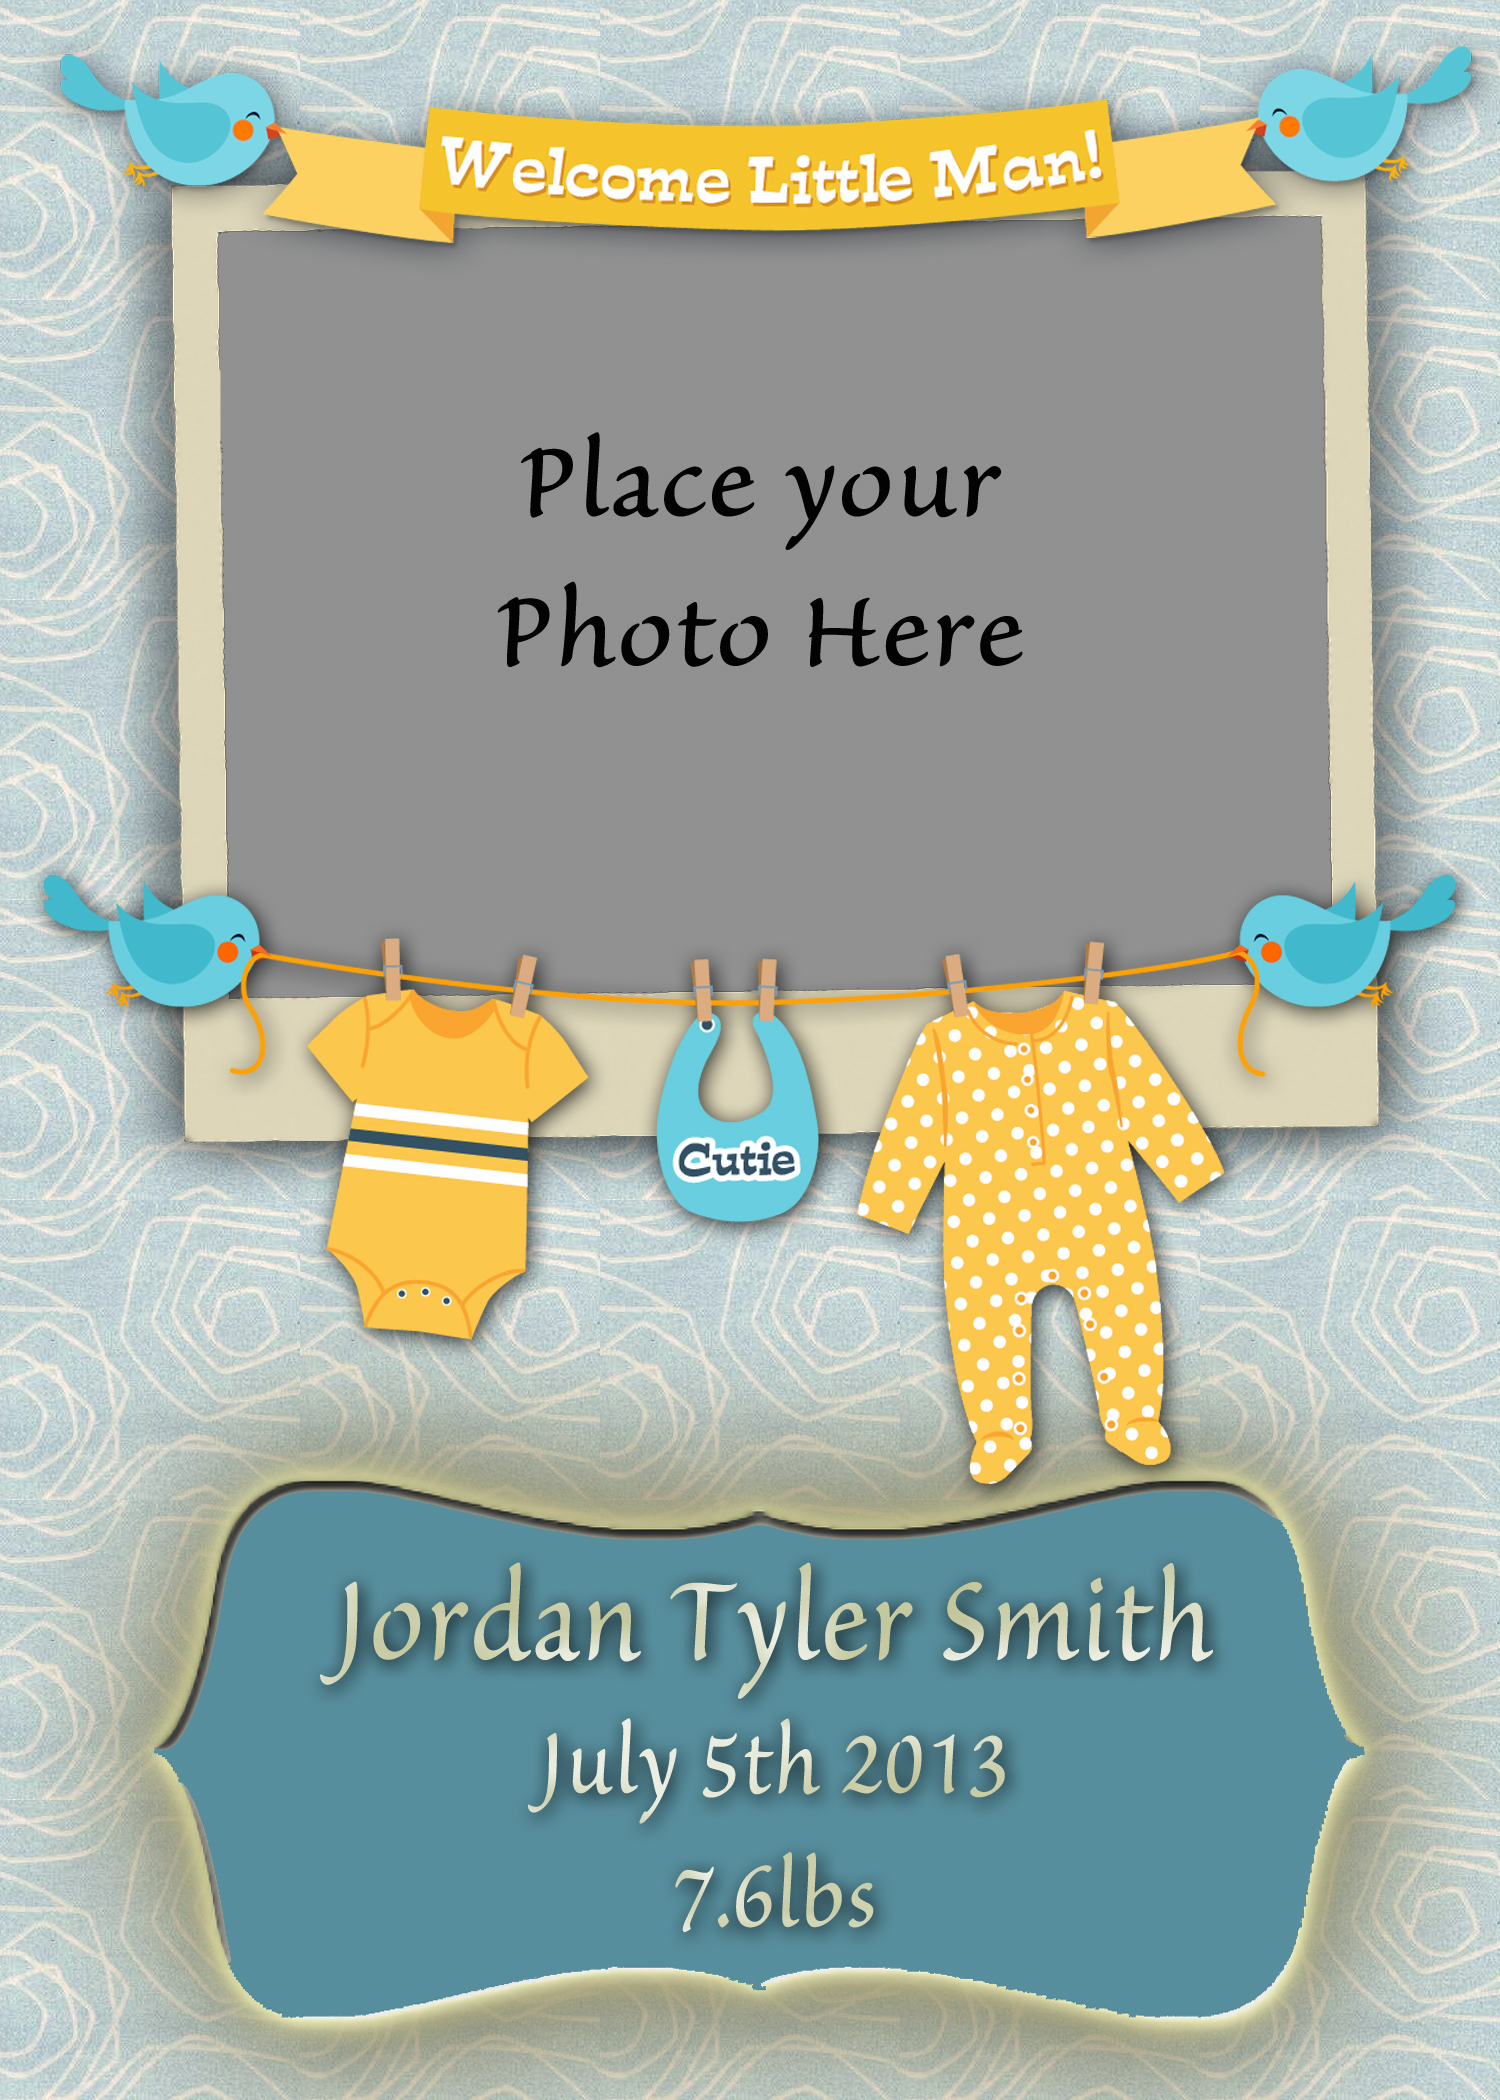 Welcome Baby Boy Quotes For Newborn: 5x7 Welcome Baby Boy Card 1 By BlissfuLLimaging On DeviantArt